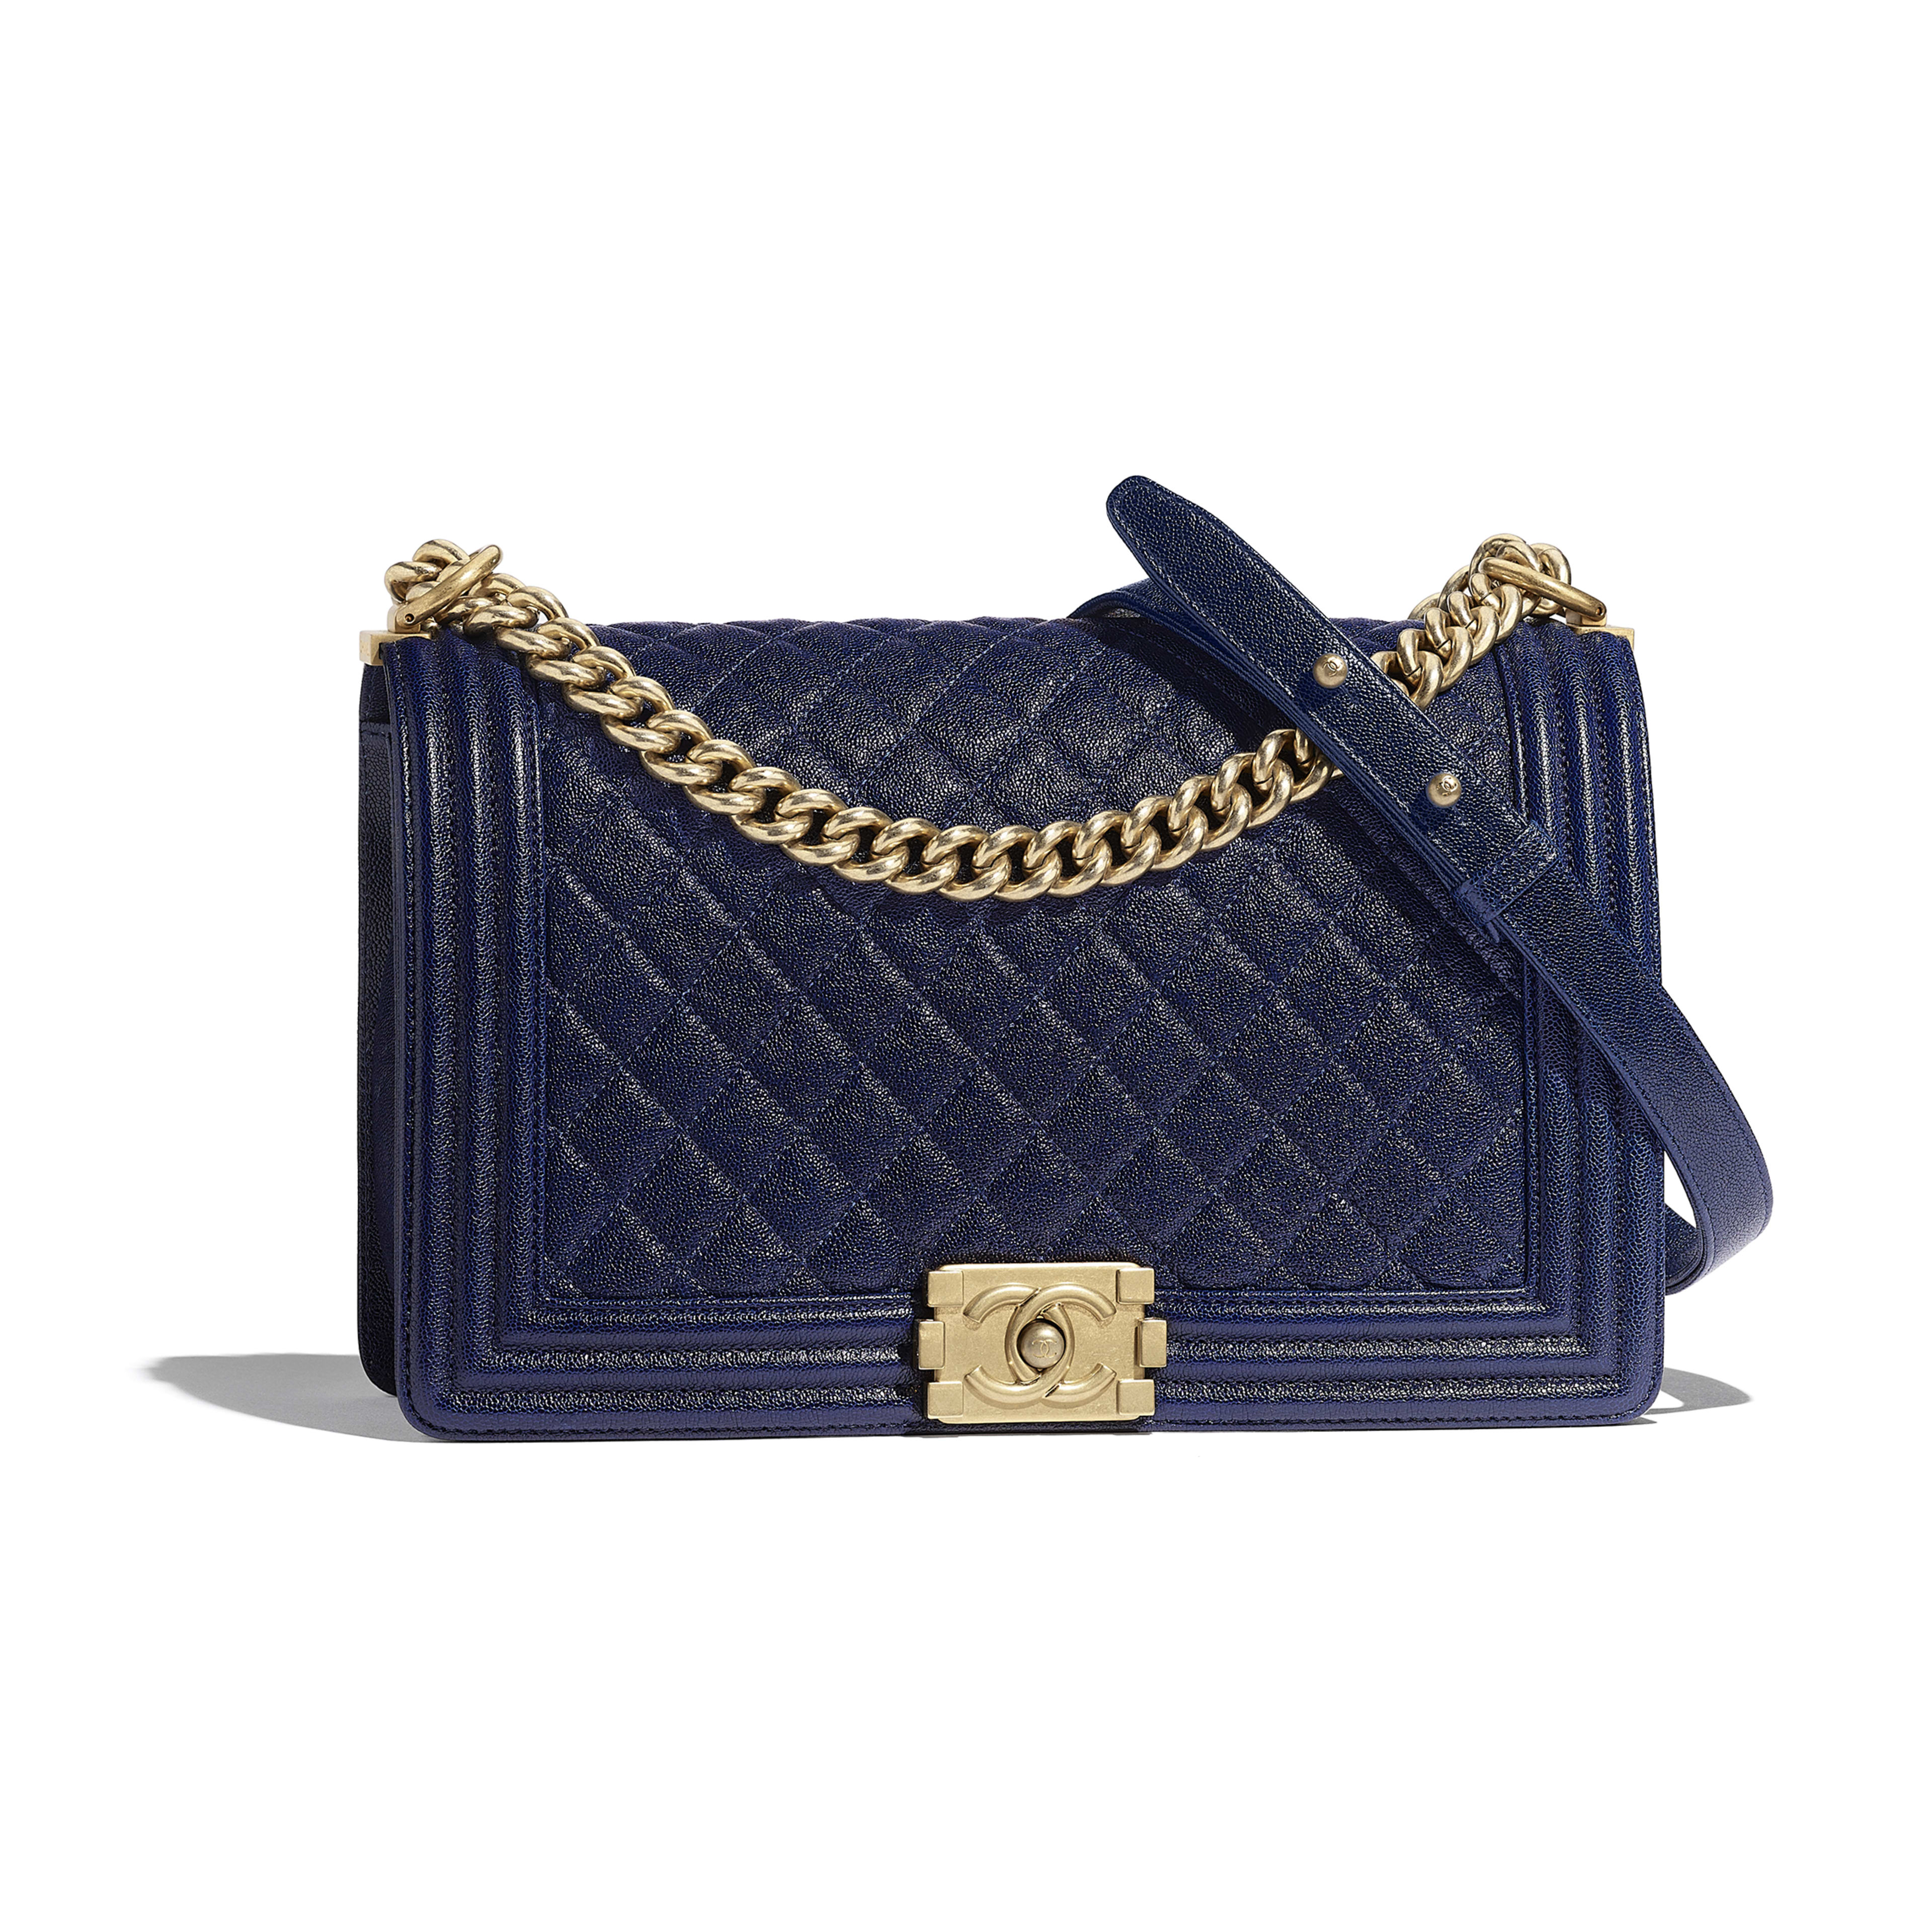 a77d8f465c88 Large BOY CHANEL Handbag - Blue - Grained Calfskin   Gold-Tone Metal -  Default ...